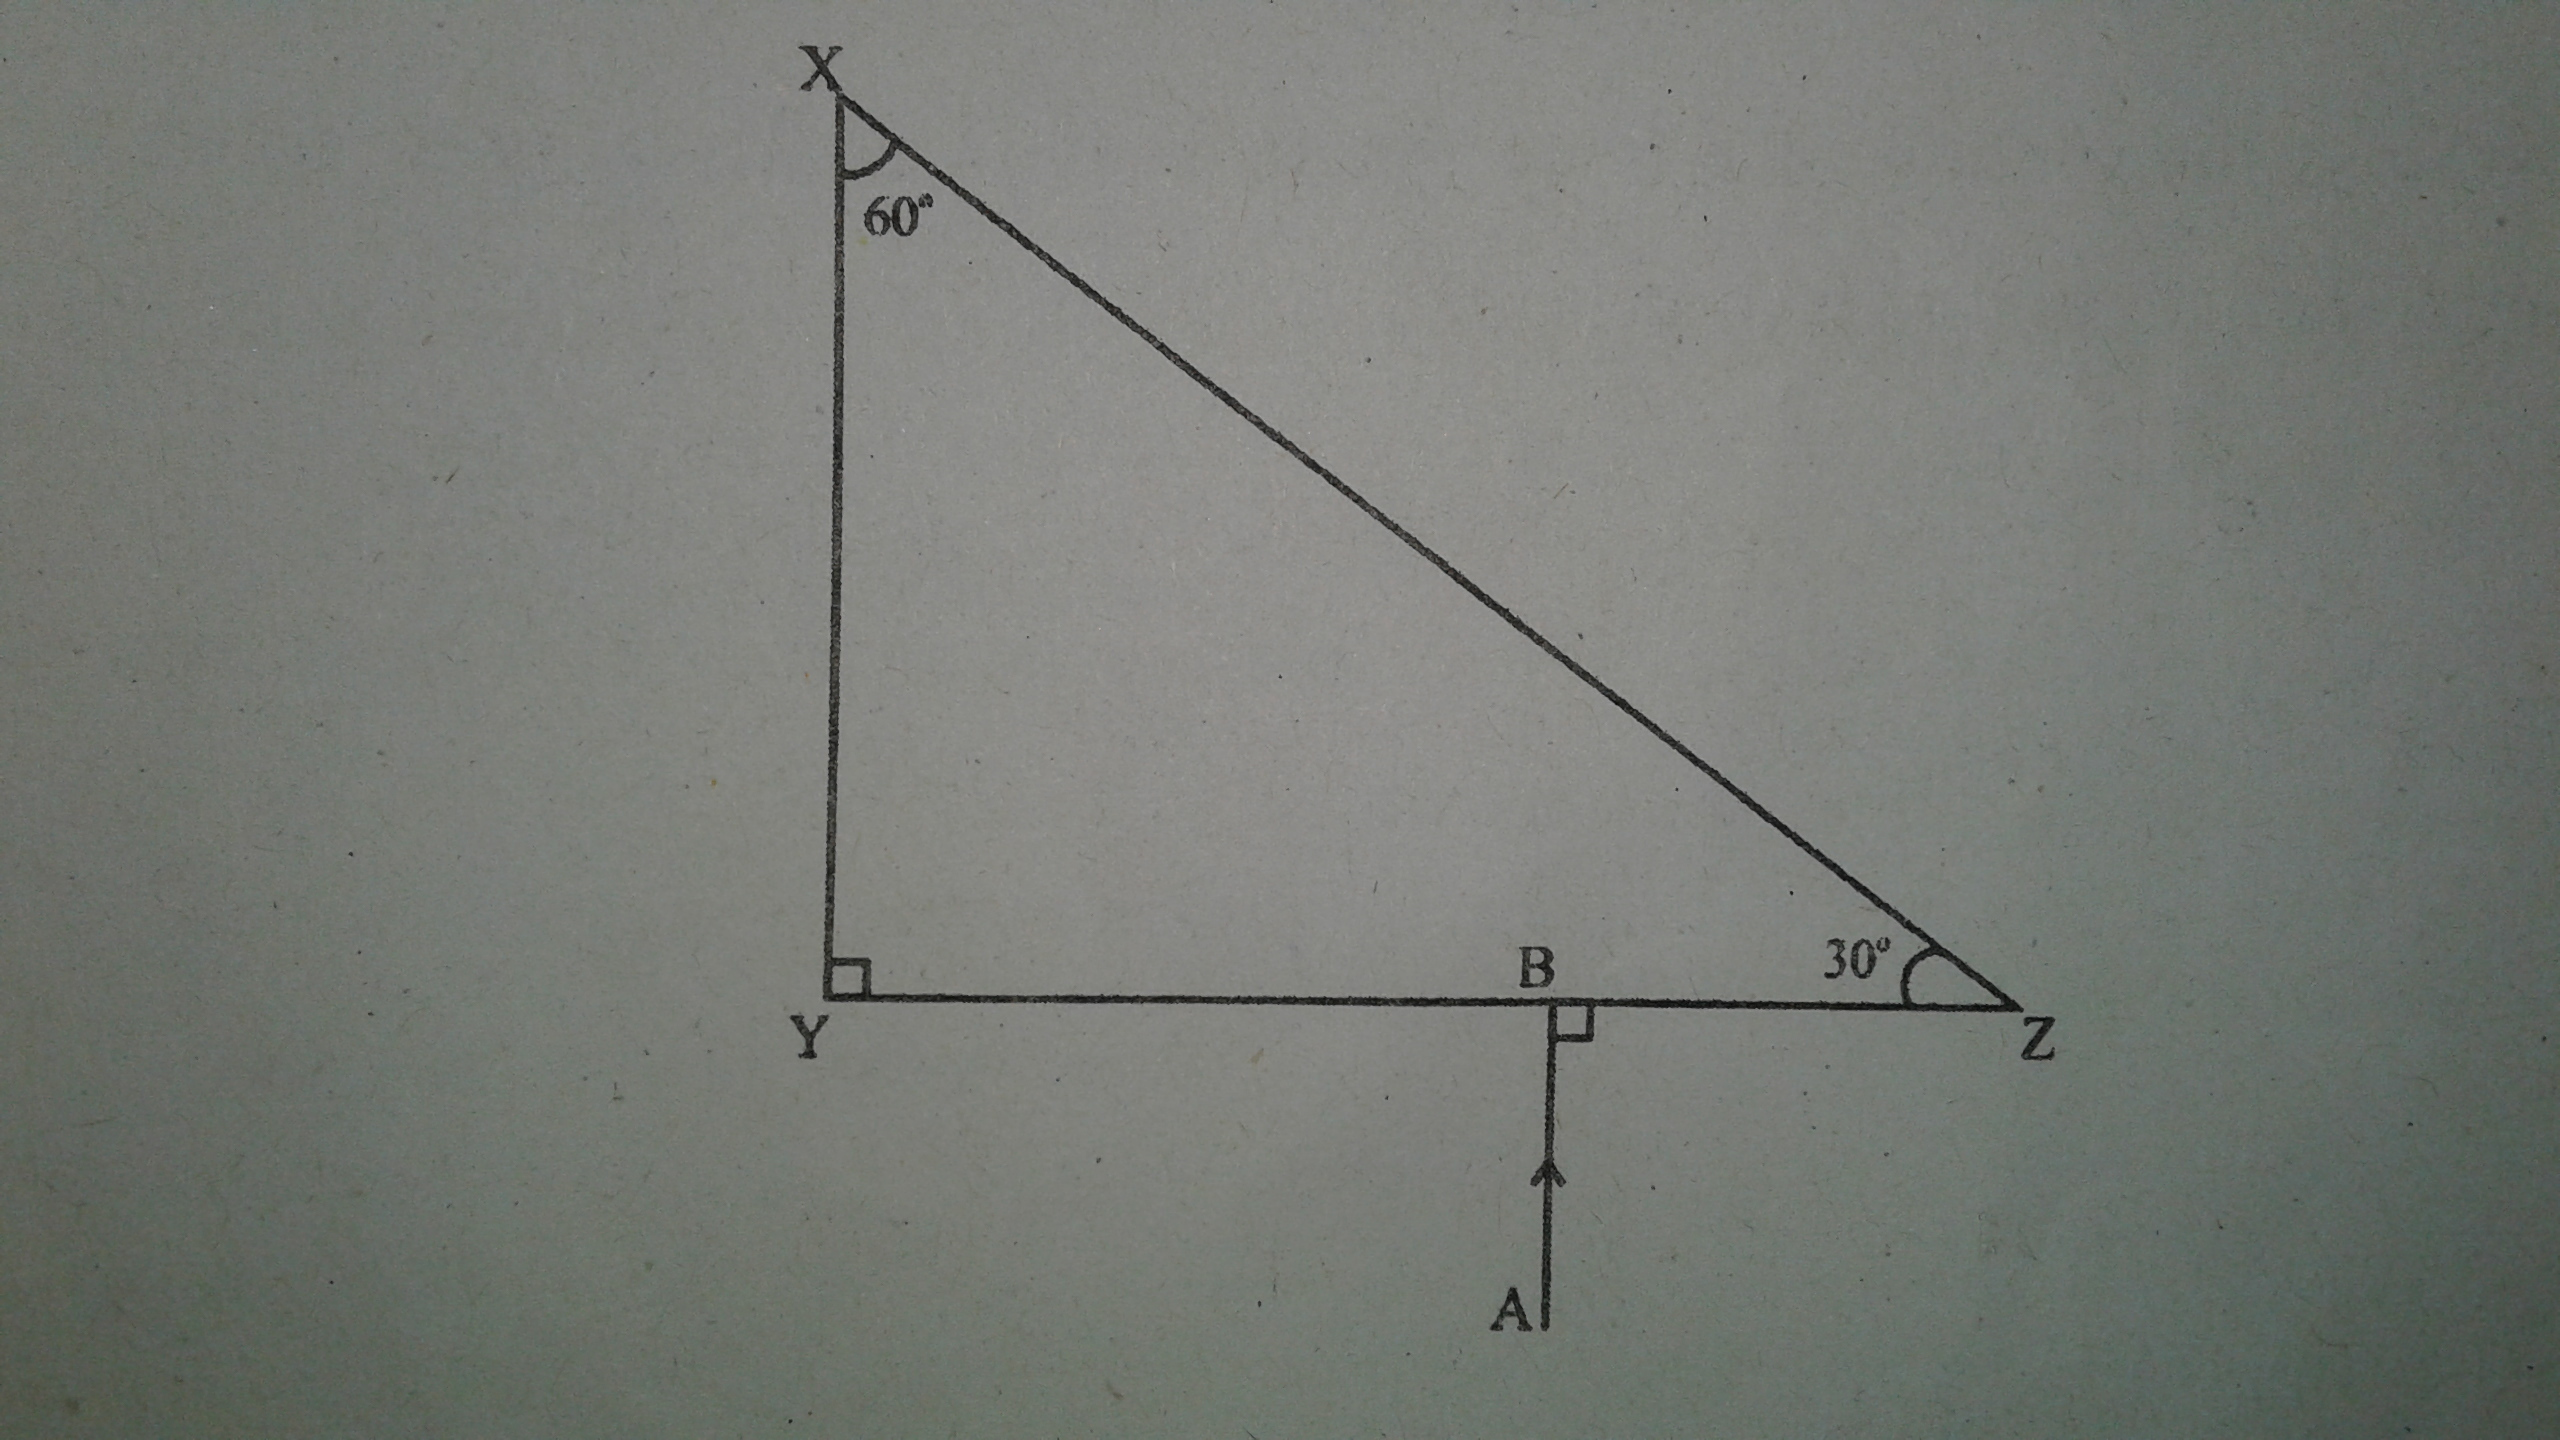 The Following Diagram Shows A 60 Degree 30 Degree And 90